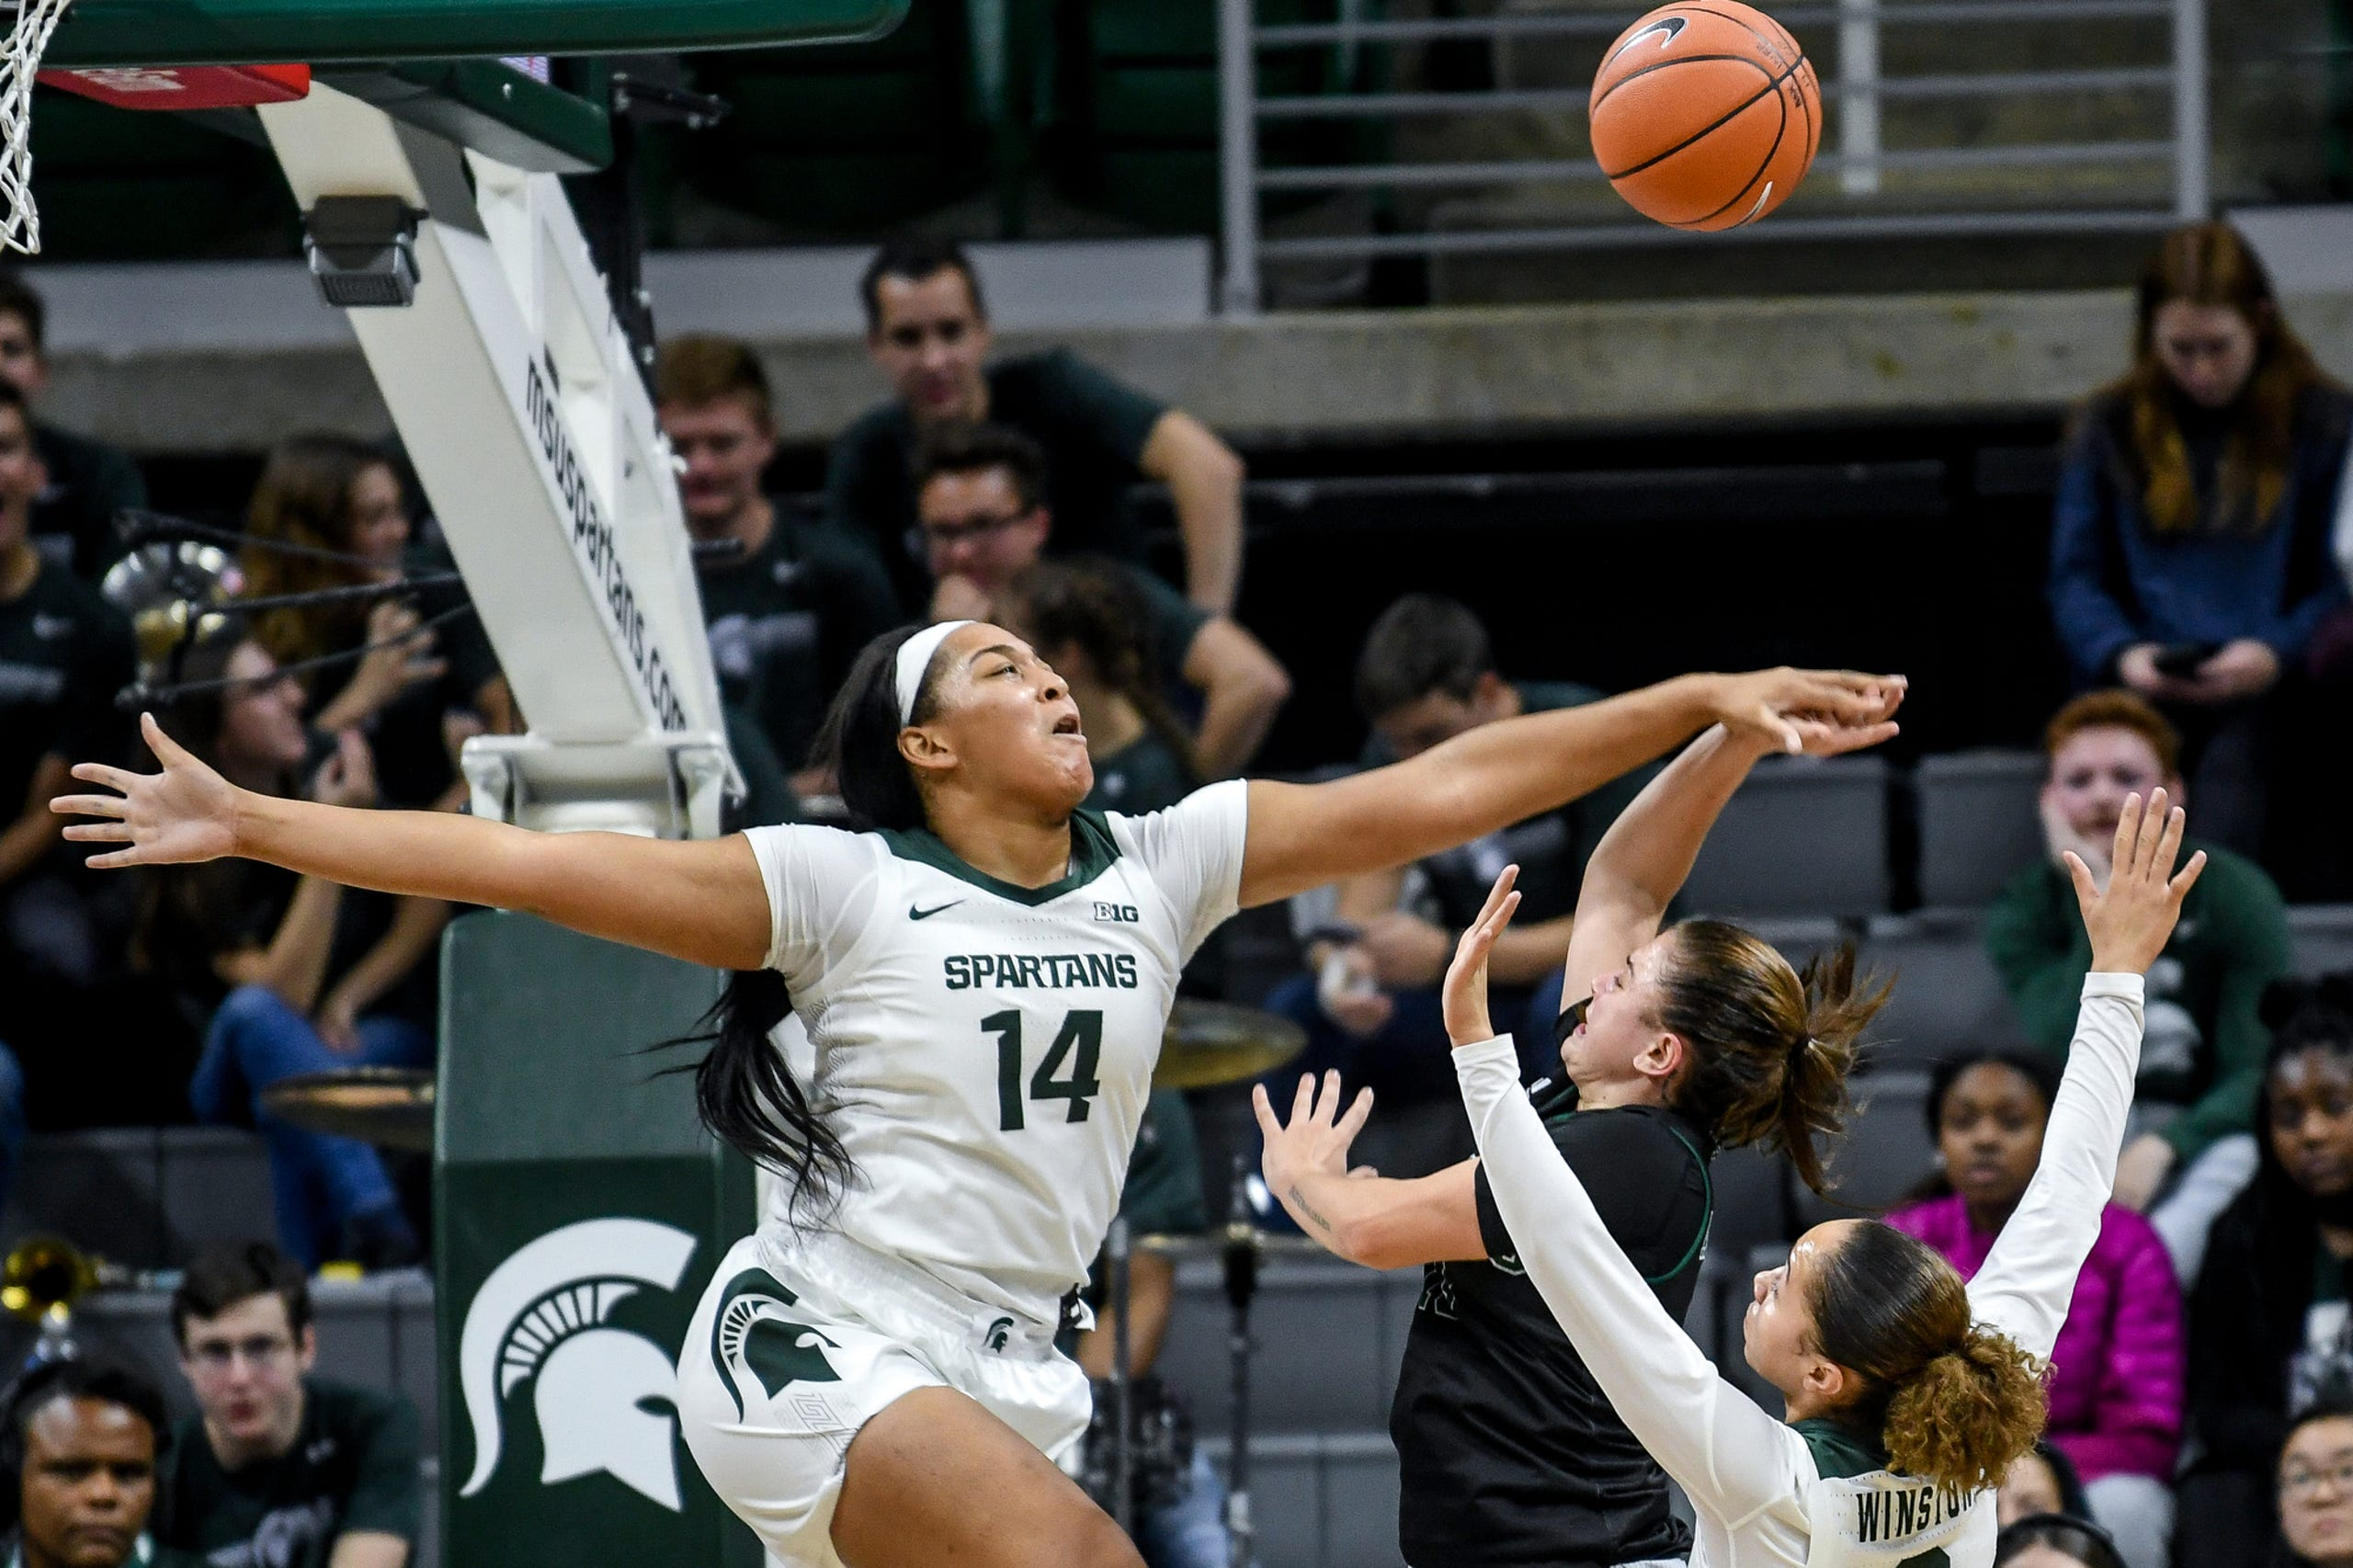 Michigan State's Taiyier Parks, left, blocks a shot Eastern Michigan's Jenna Annecchiarico during the third quarter on Tuesday, Nov. 5, 2019, at the Breslin Center in East Lansing.